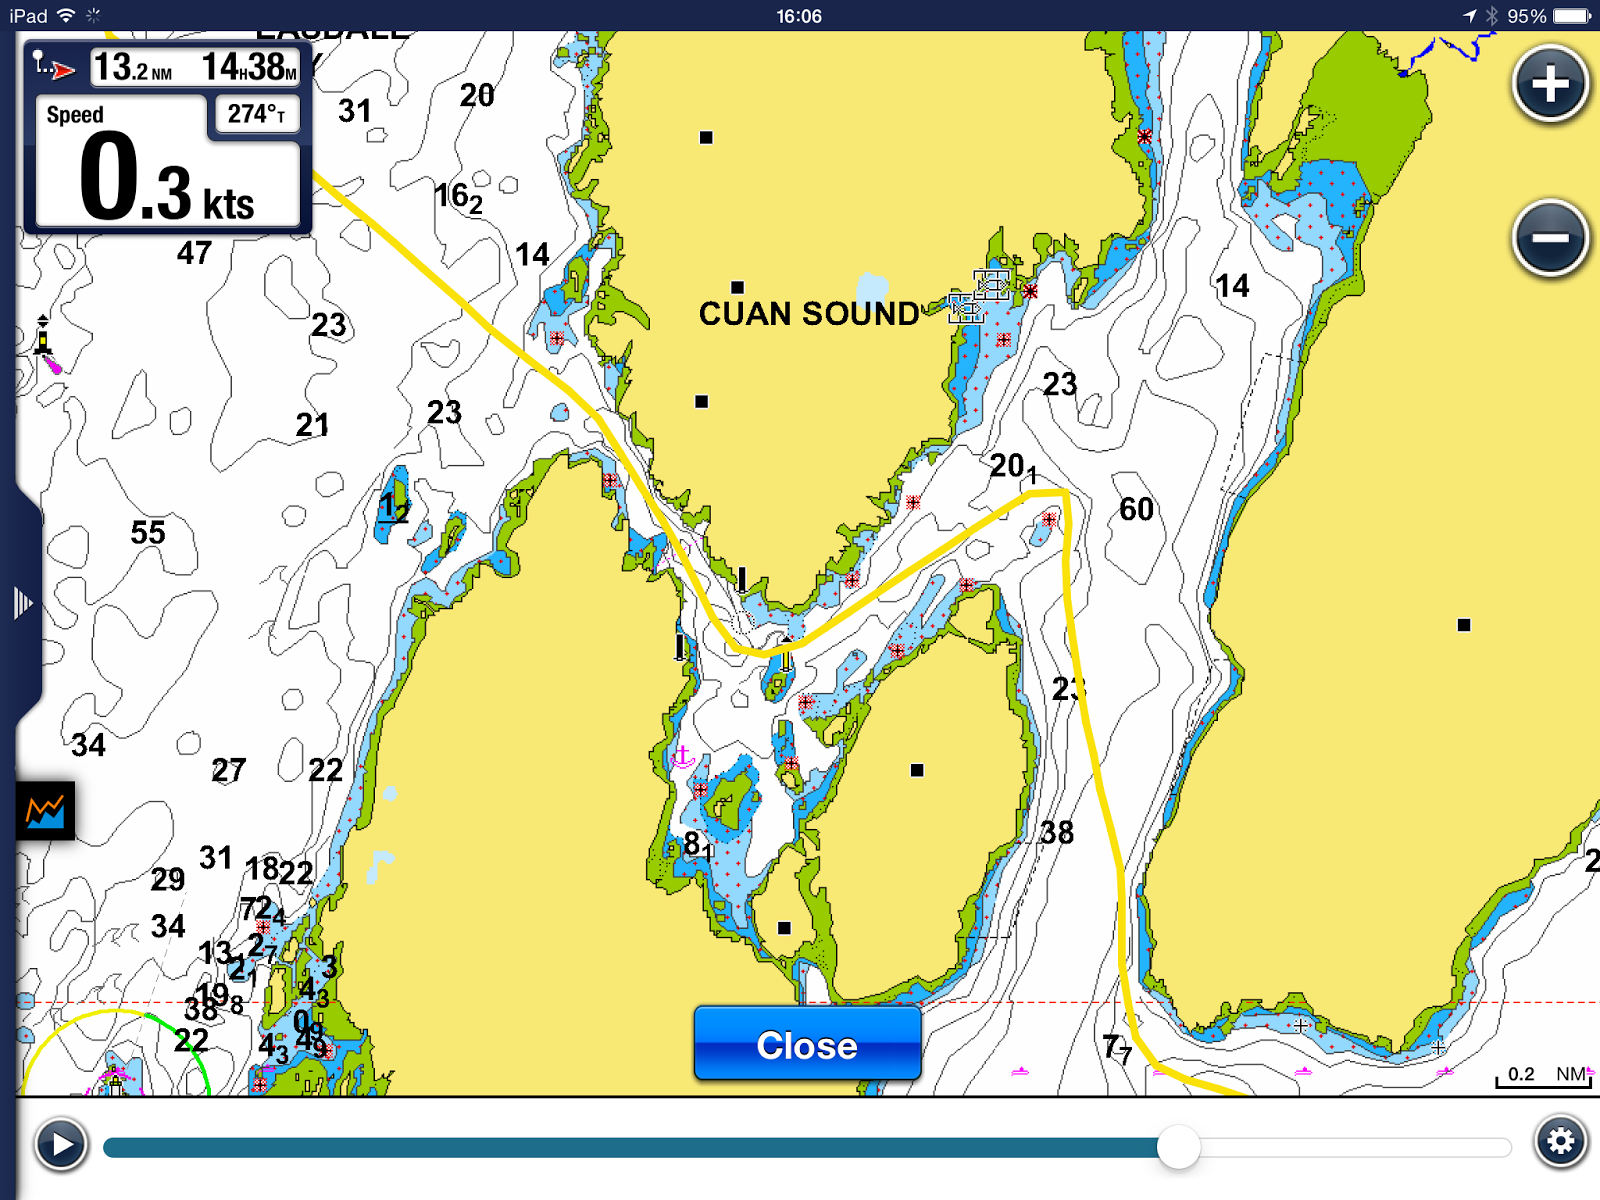 from loch melfort our voyage took us through the tidal gate at cuan sound between the islands of luing and seil